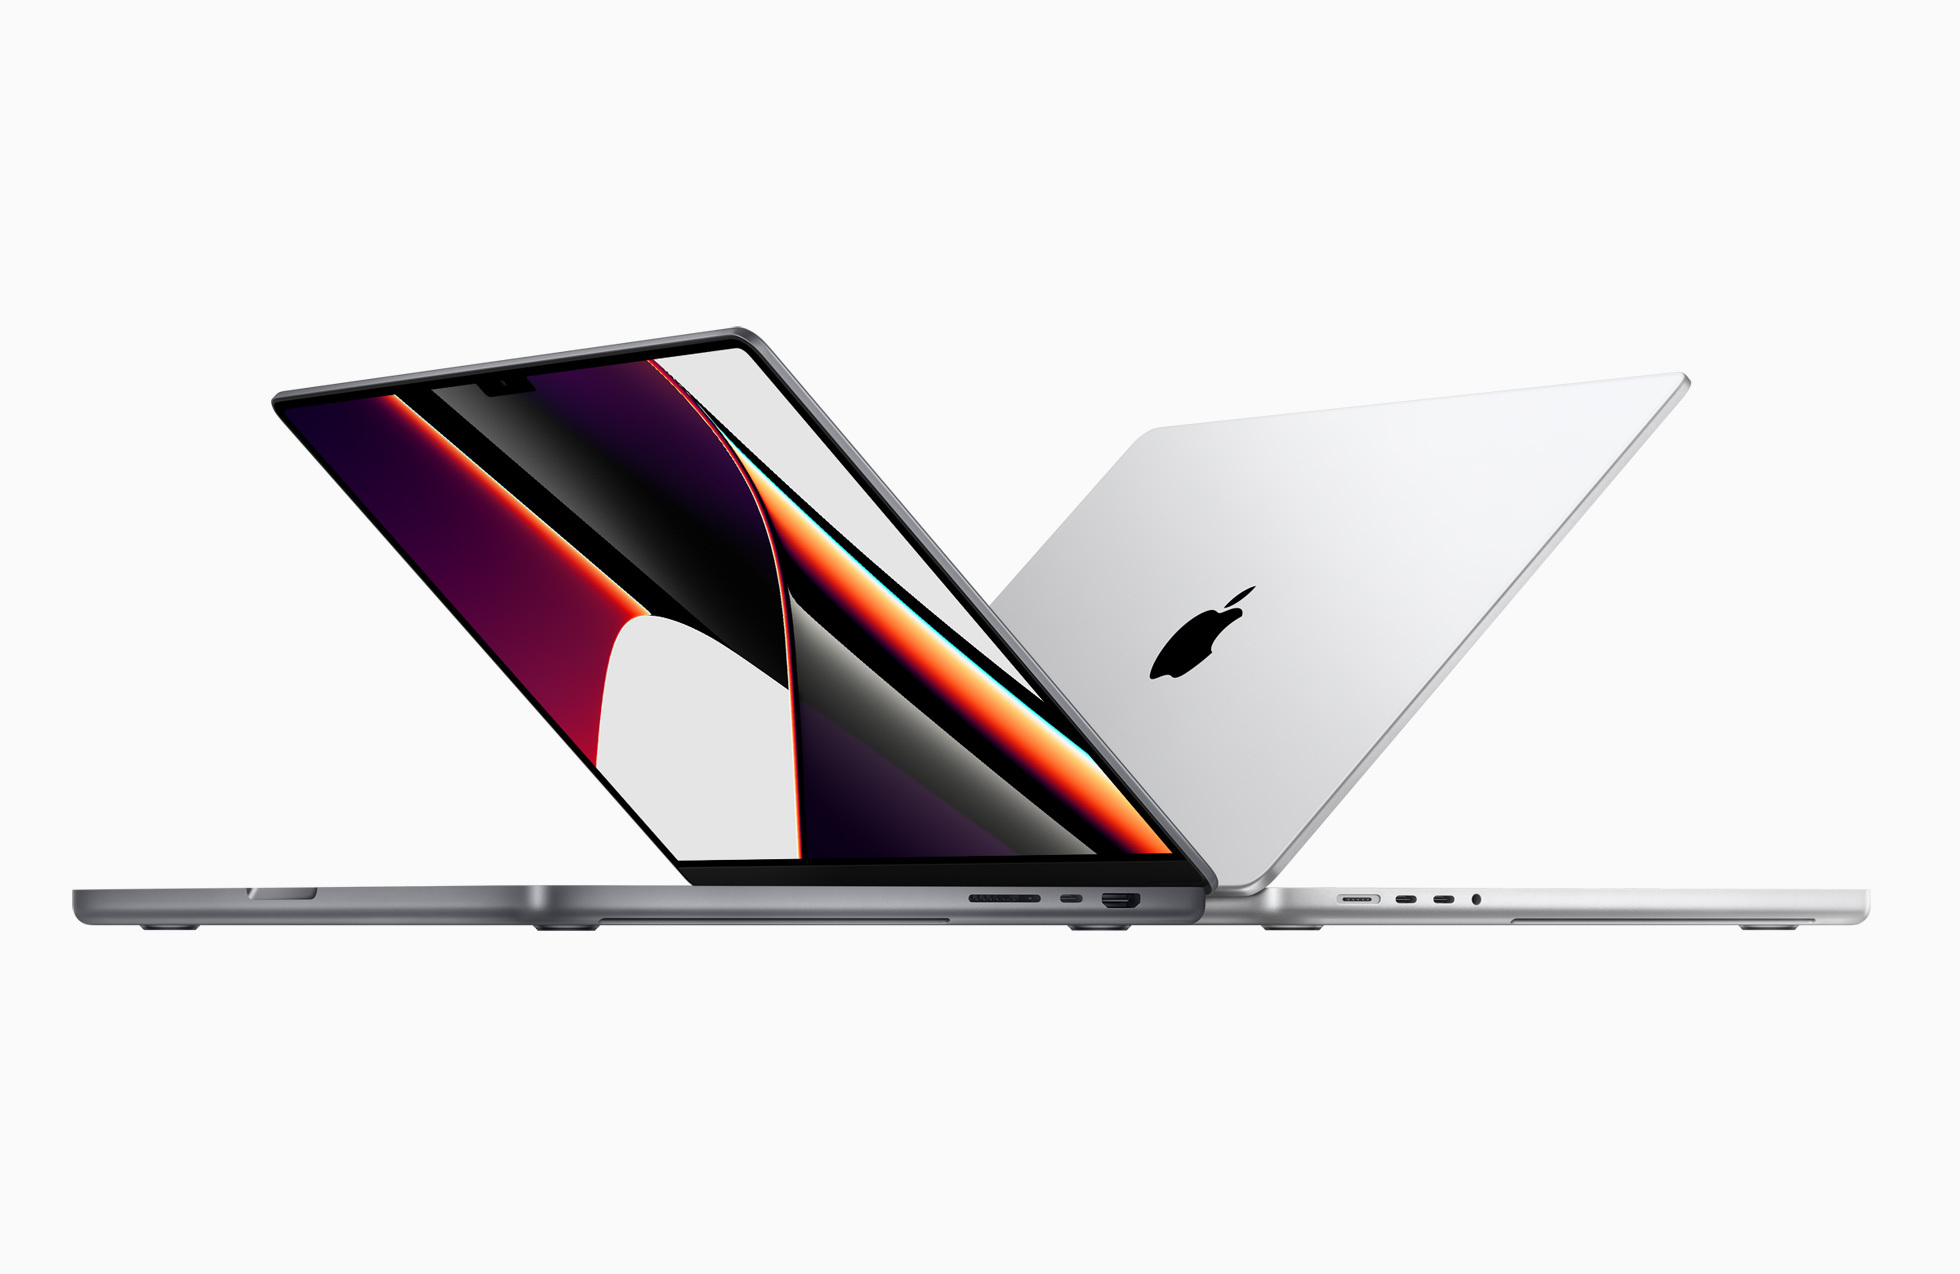 Everything You NEED to Know about the NEW MacBook Pros! 14? & 16? w/ M1 Pro & M1 Max Processors!